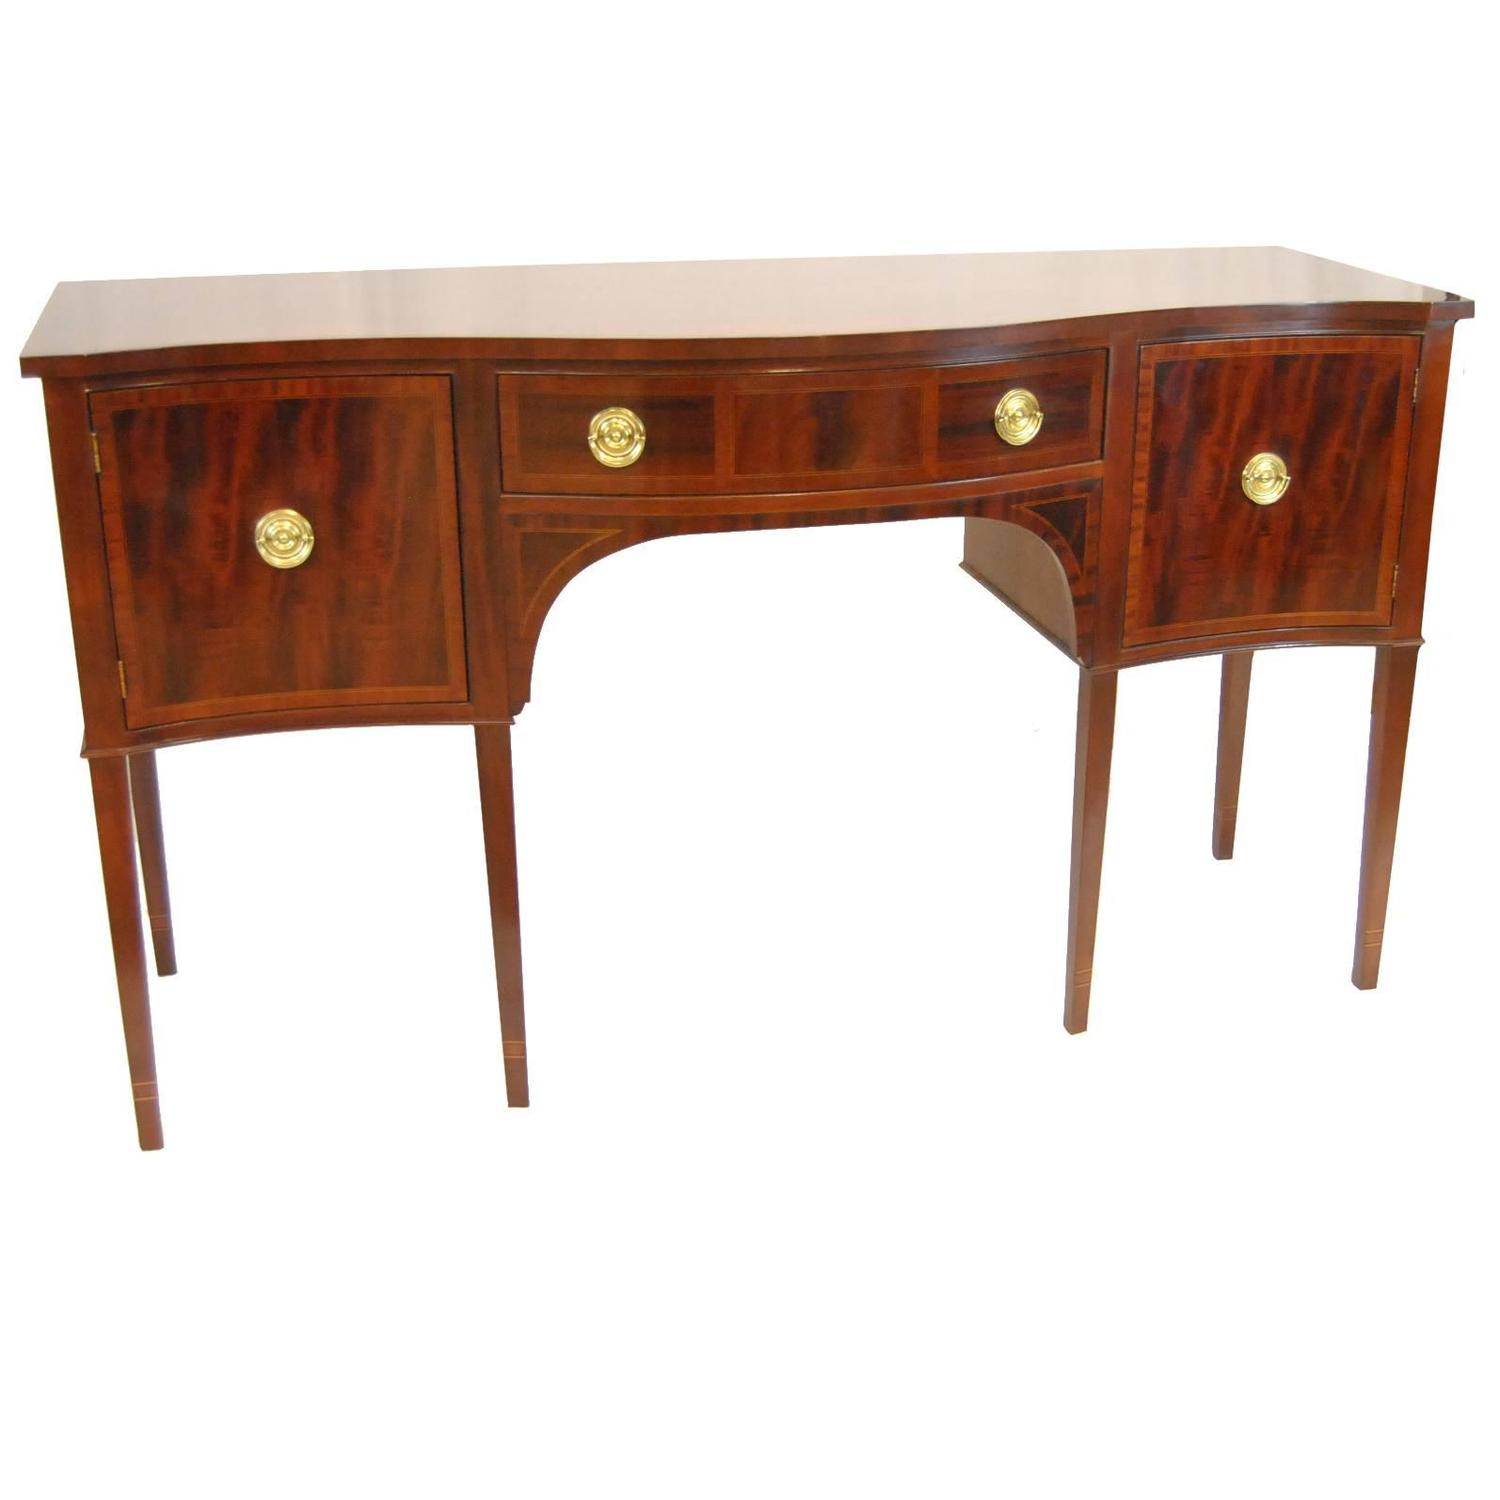 Baker Feathered Mahogany Hepplewhite Sideboard at 1stdibs